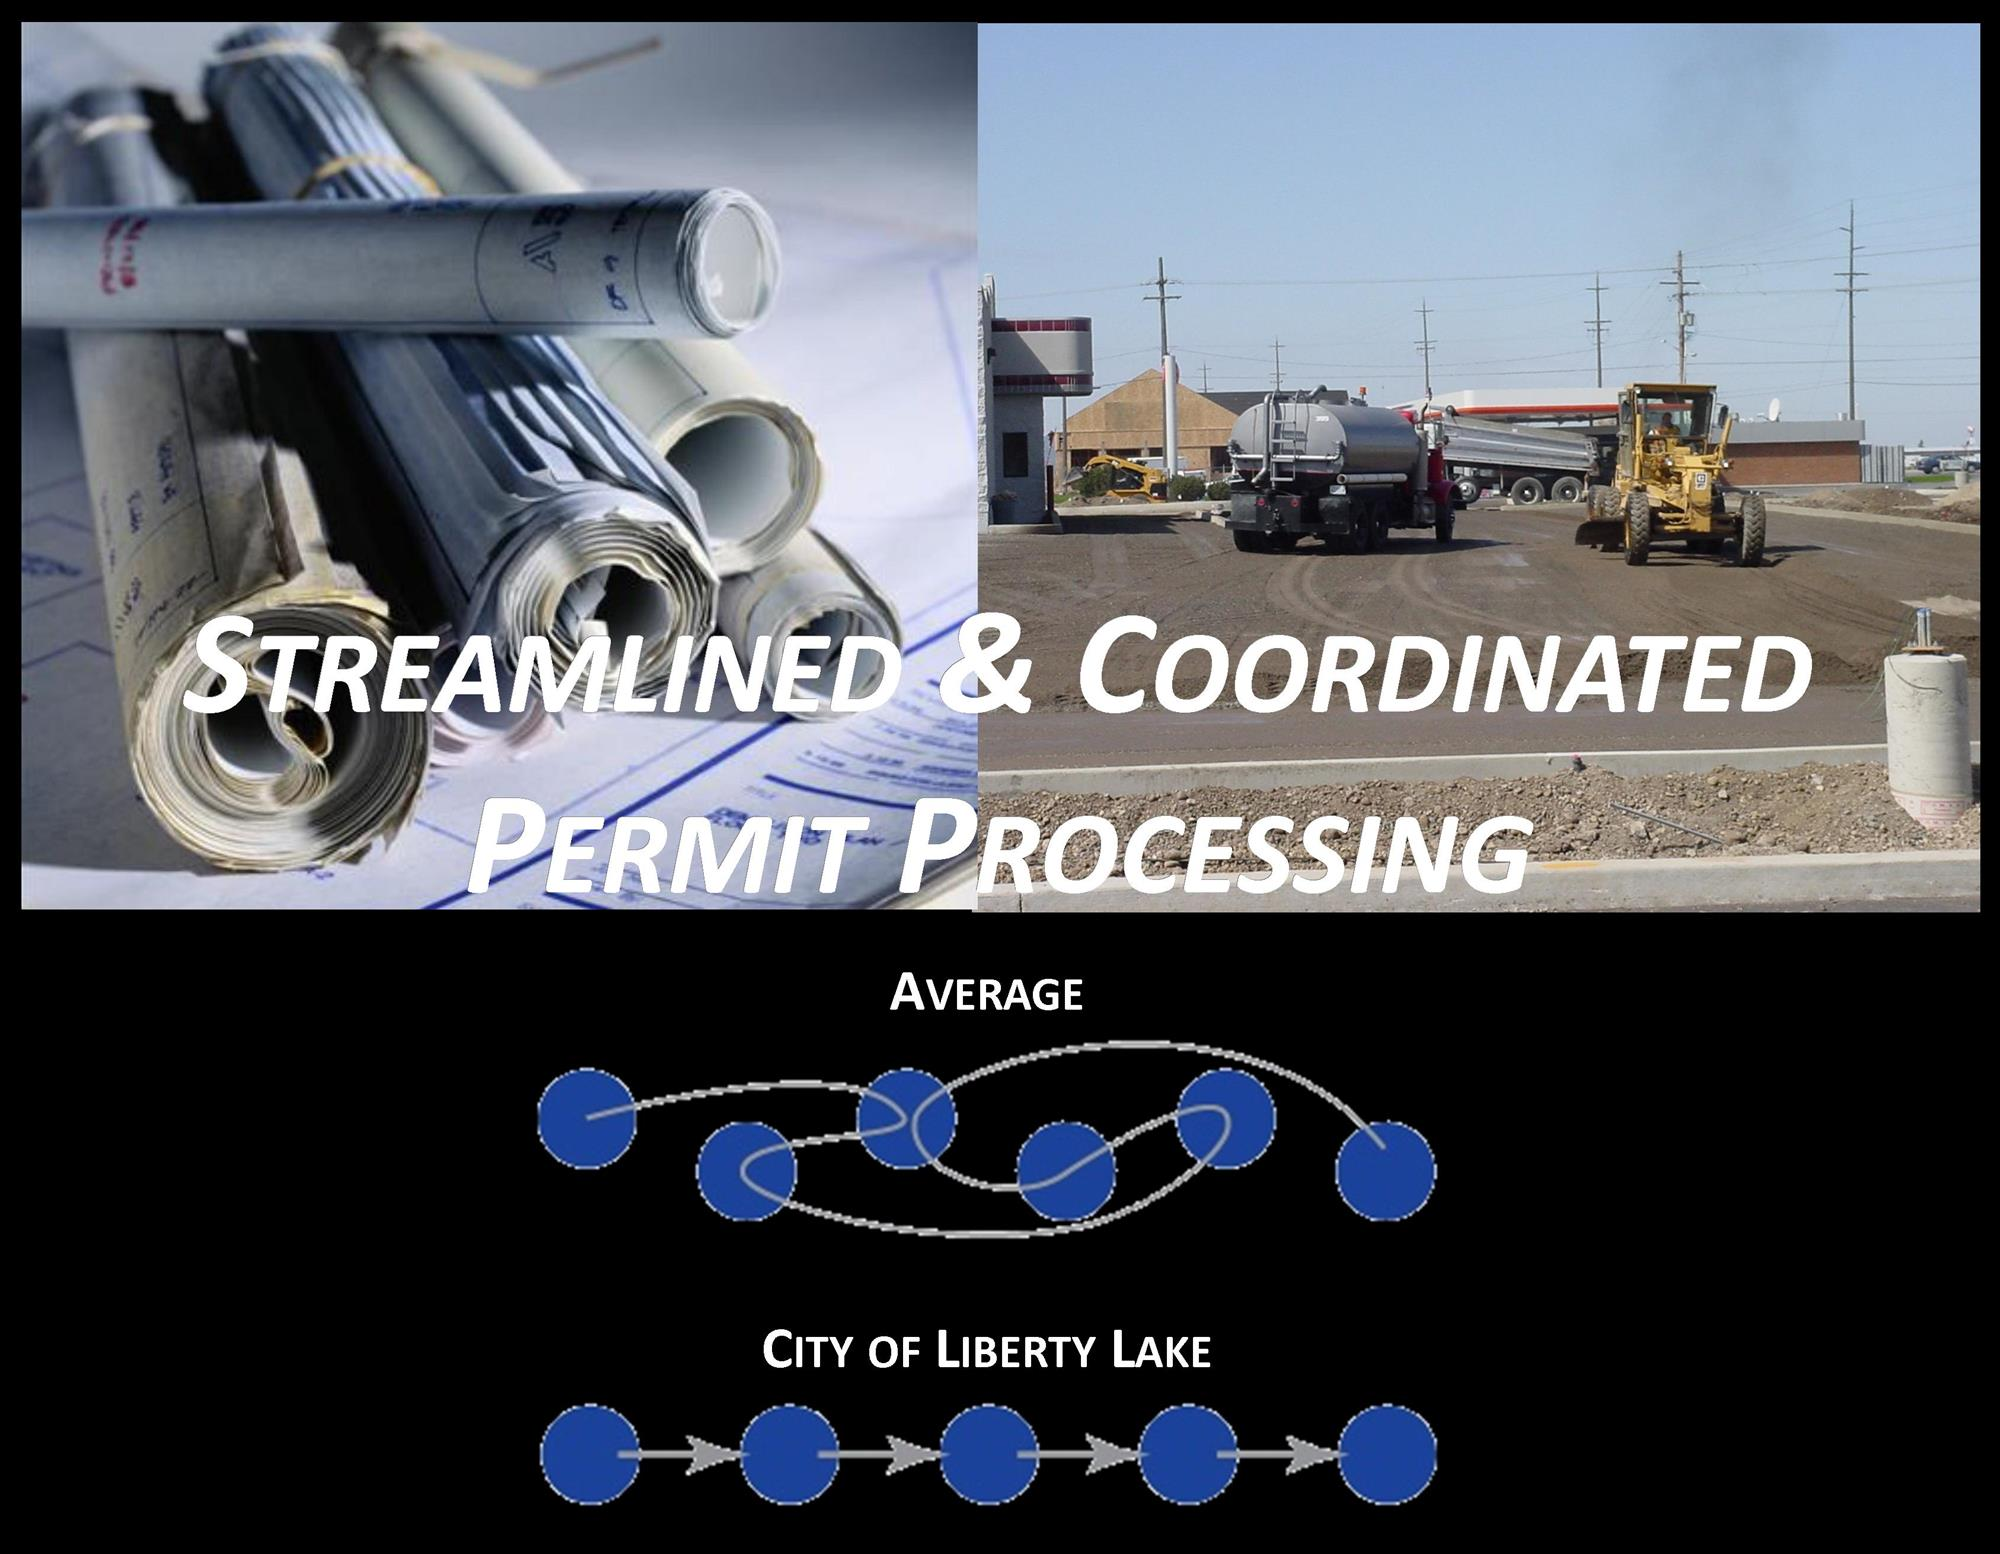 Streamlined & Coordinated Permit Processing